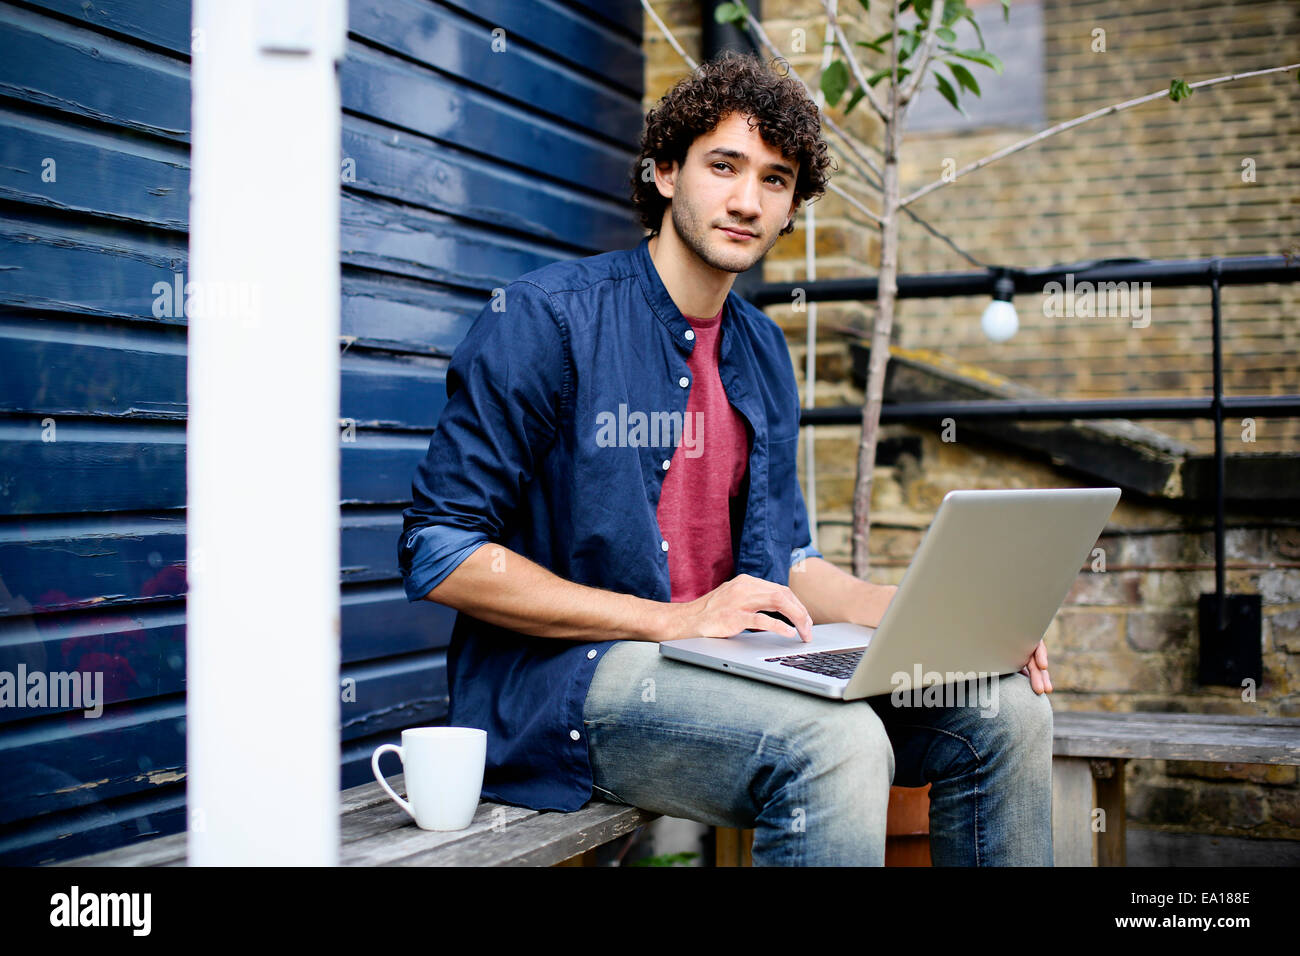 Man using laptop on bench - Stock Image